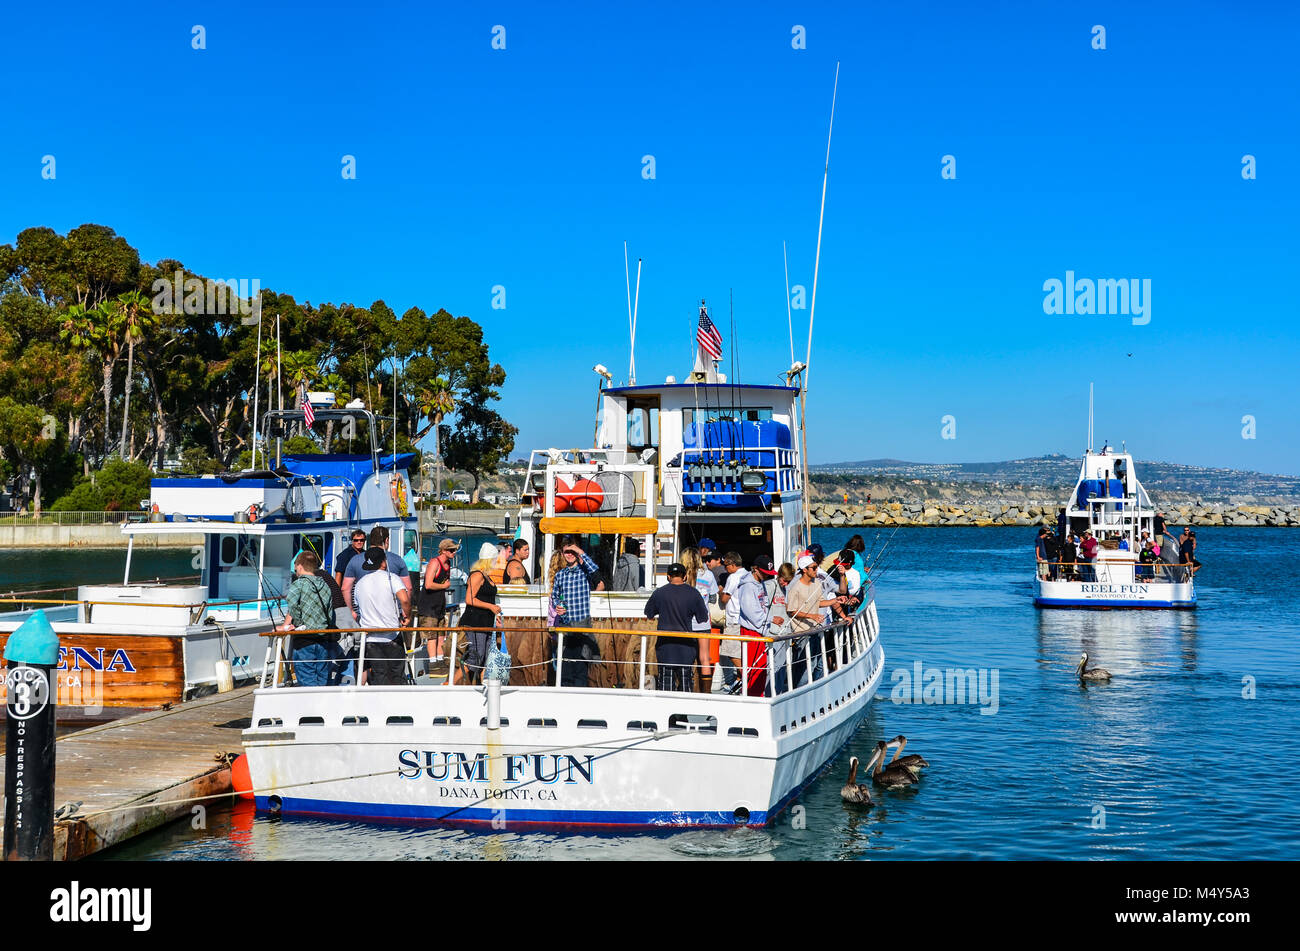 Tourists board a fishing boat at Dana Point Harbor in Orange County, CA. - Stock Image